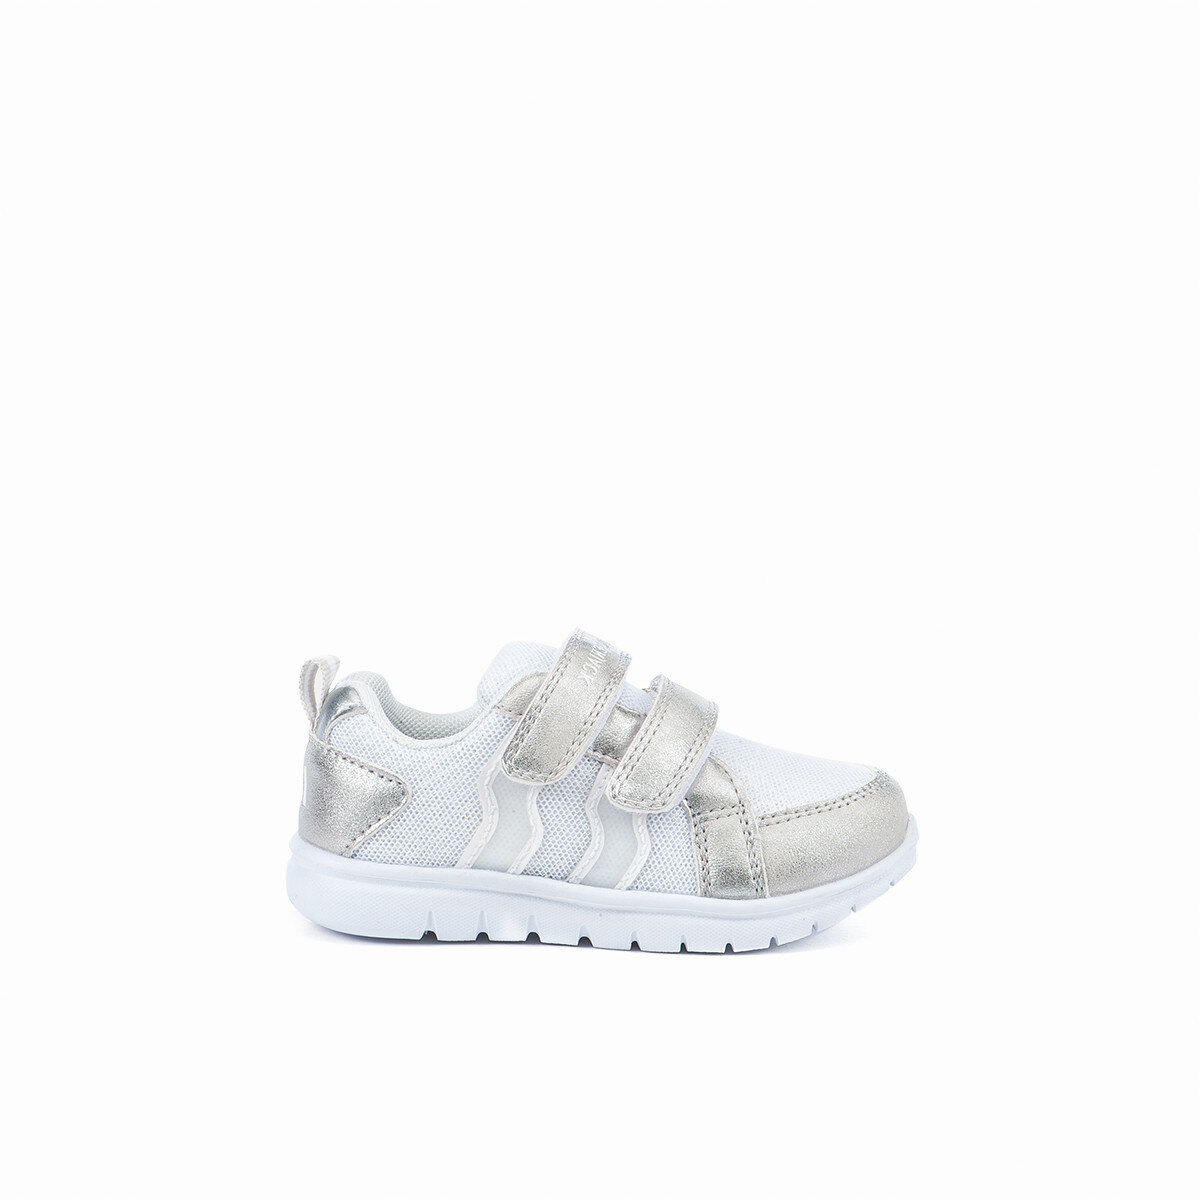 CRASH Sneakers Bambina